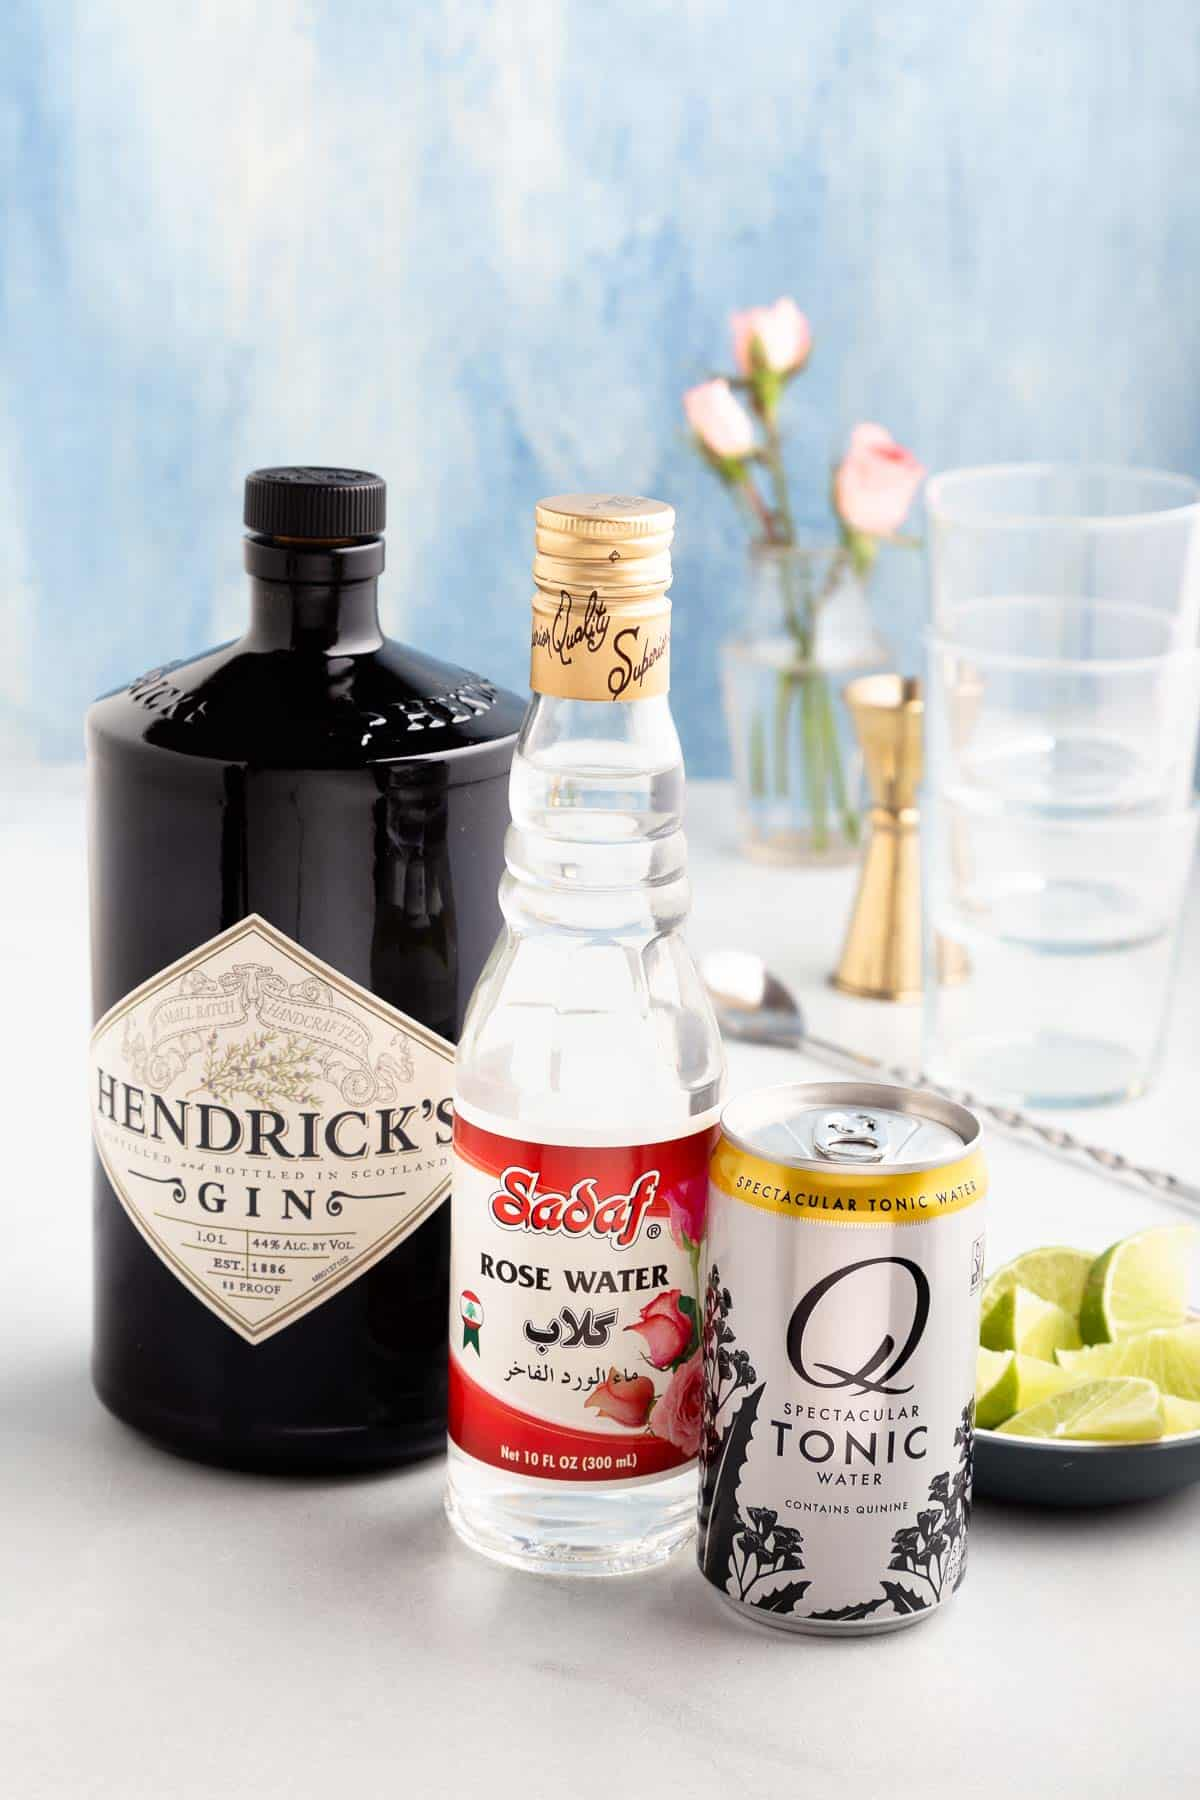 bottles of gin, rose water, and tonic